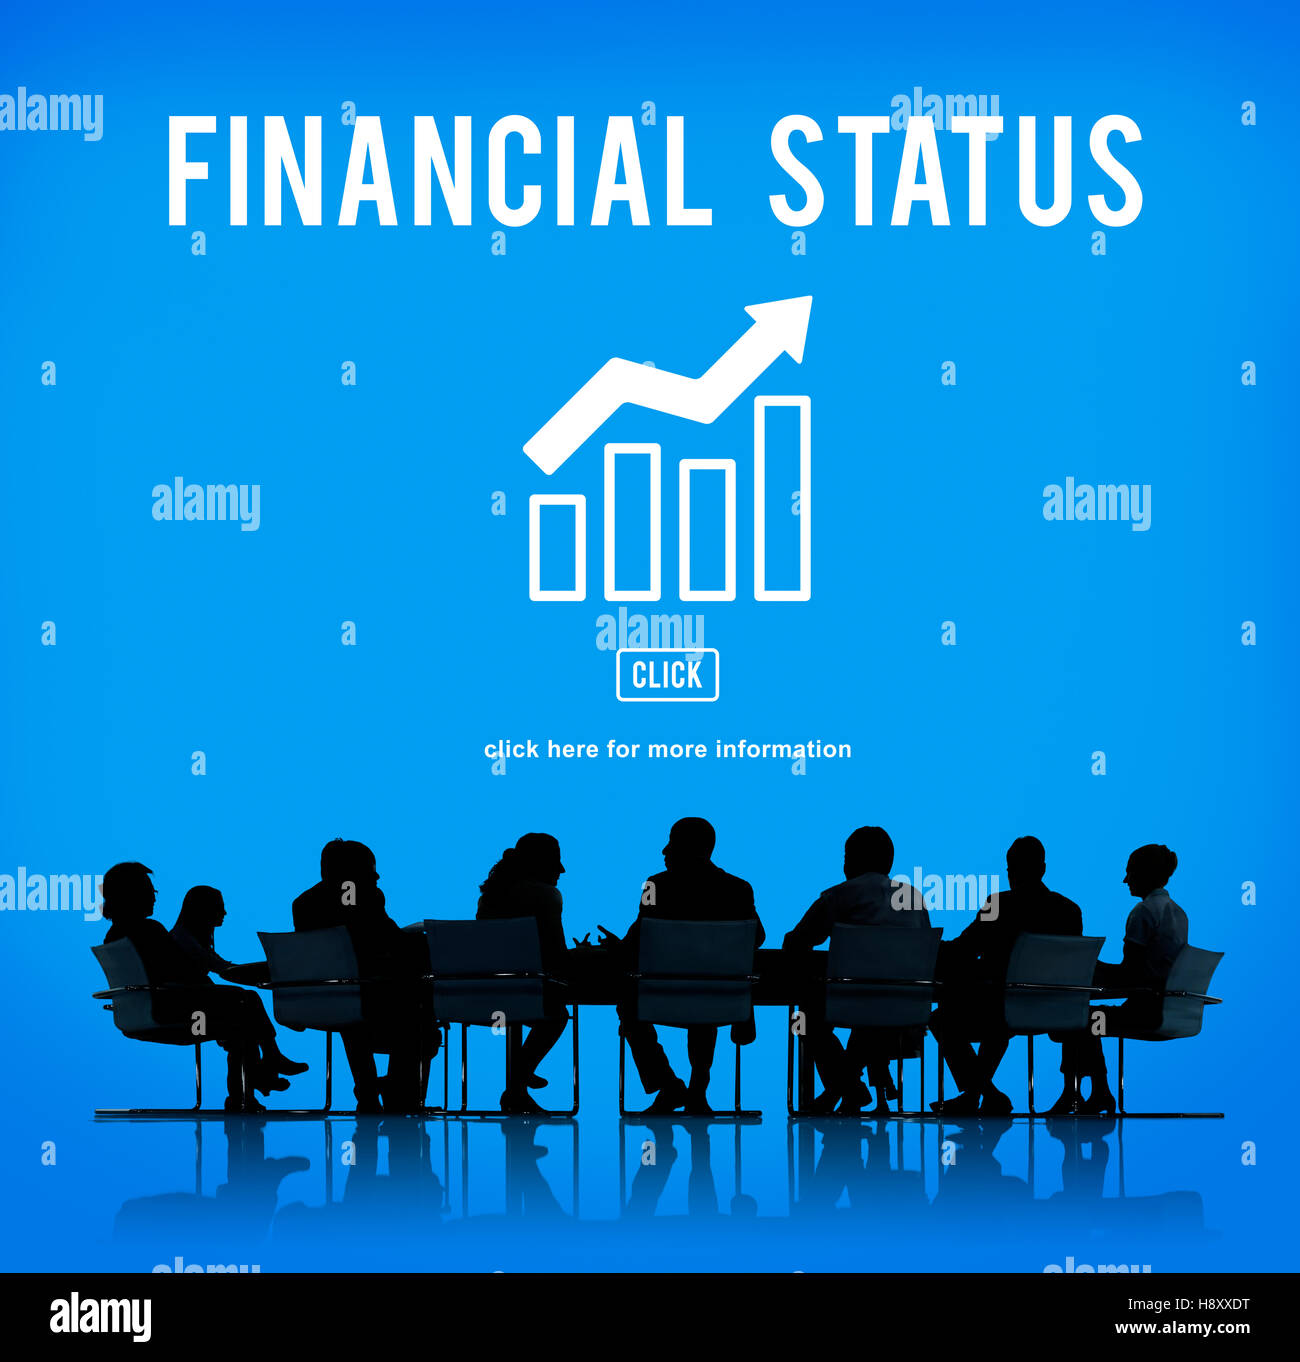 Business Growth Economics Graph Concept - Stock Image